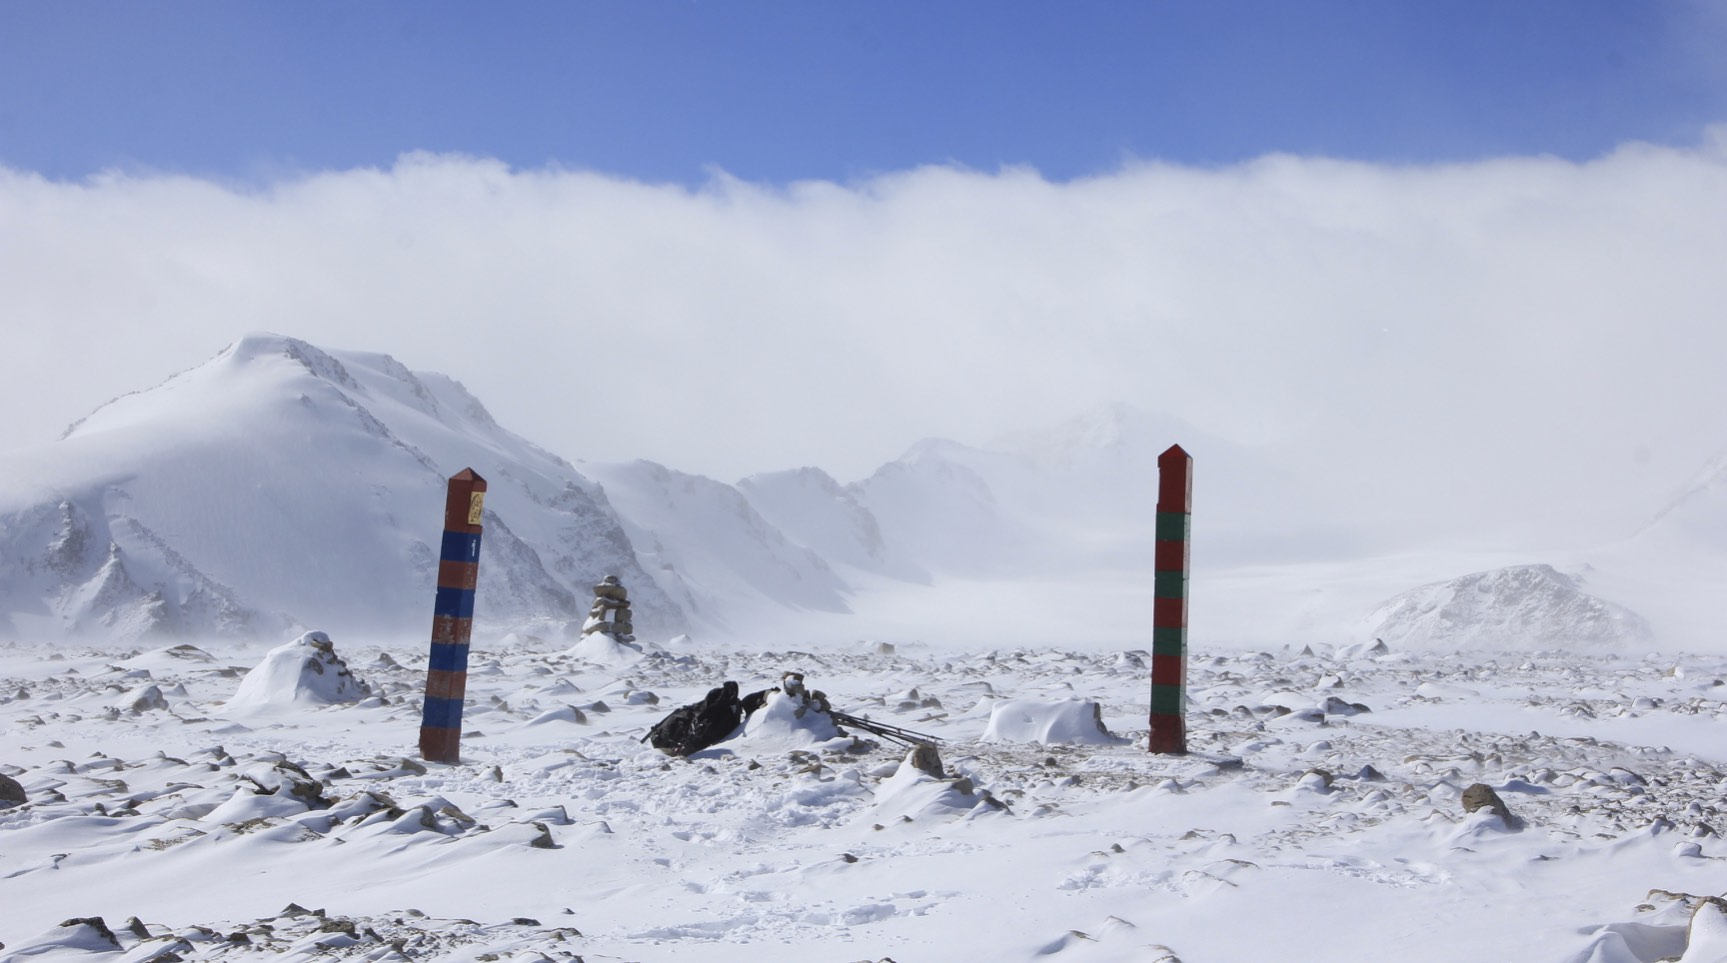 The border between Russia and Mongolia